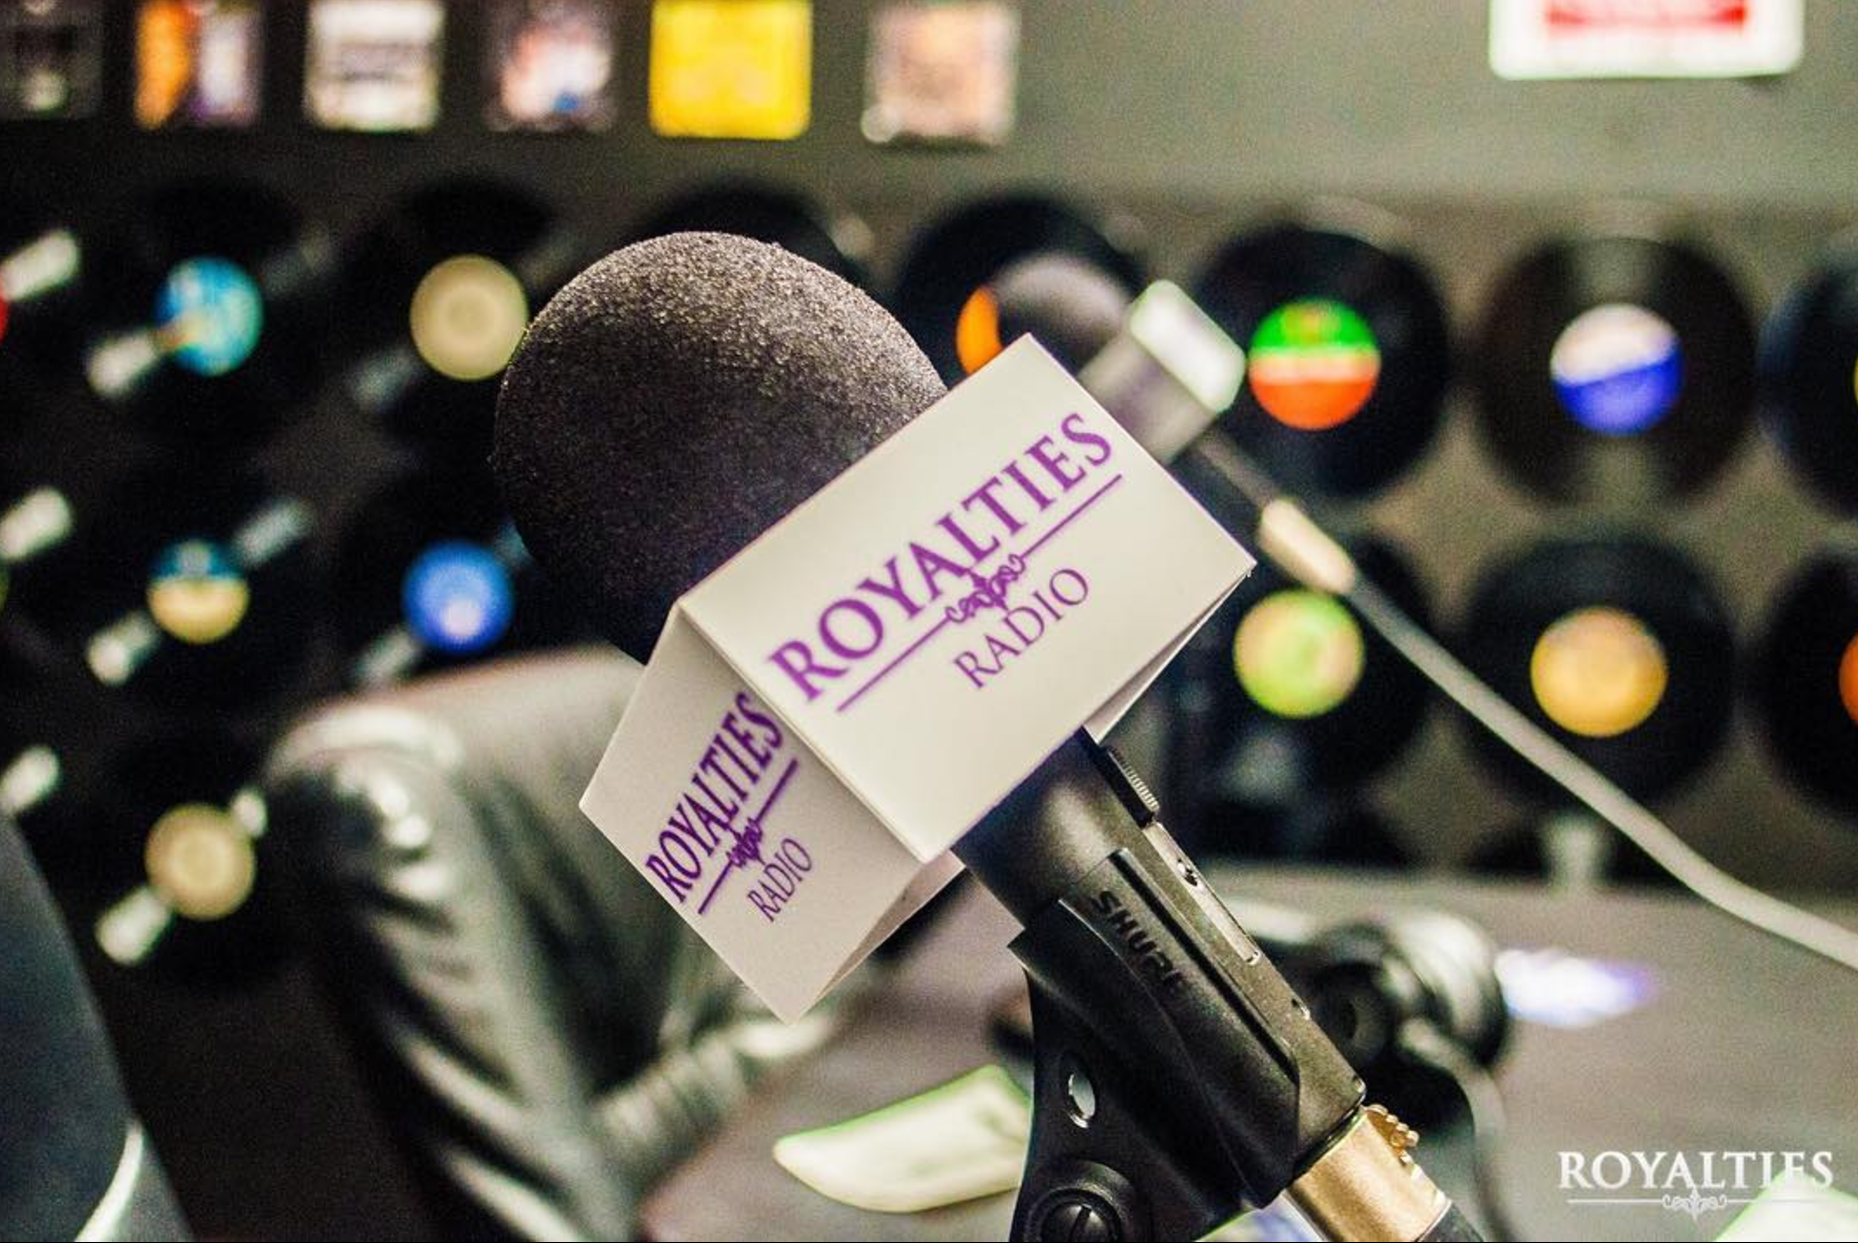 Royalties Radio Mic